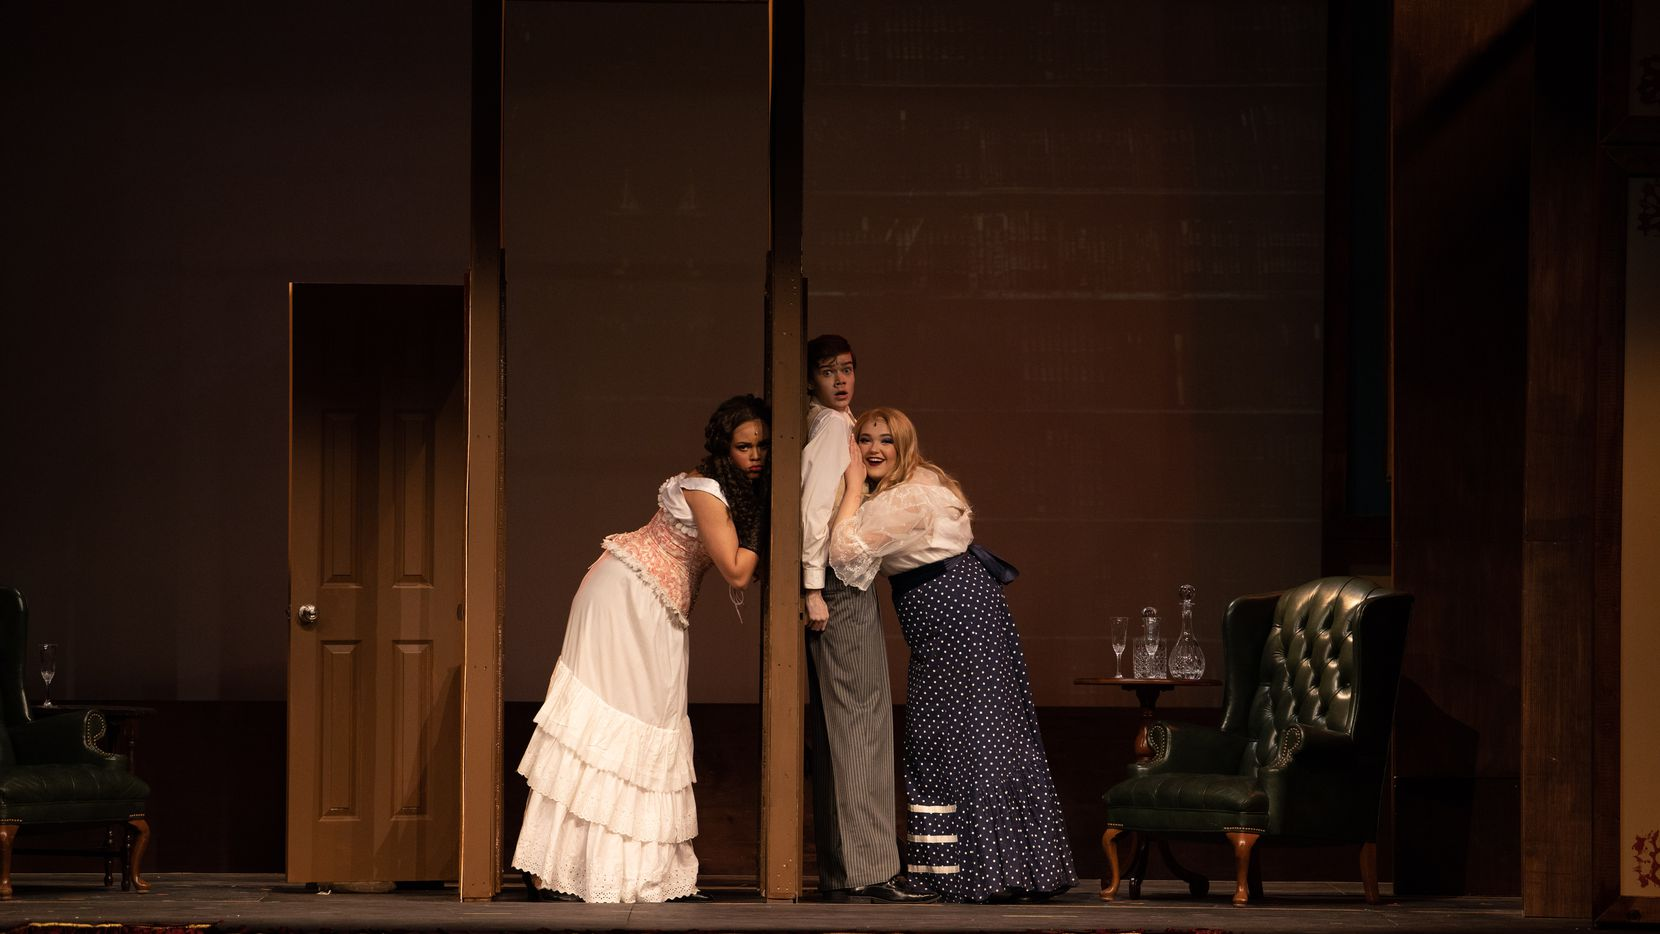 """This is a scene from """"A Gentleman's Guide to Love and Murder,"""" as performed at Guyer High School in Denton. Guyer won the most awards, five, including Best Musical for this production, at the 2020 High School Musical Theatre Awards, hosted by Dallas Summer Musicals, in a """"virtual"""" presentation on YouTube."""